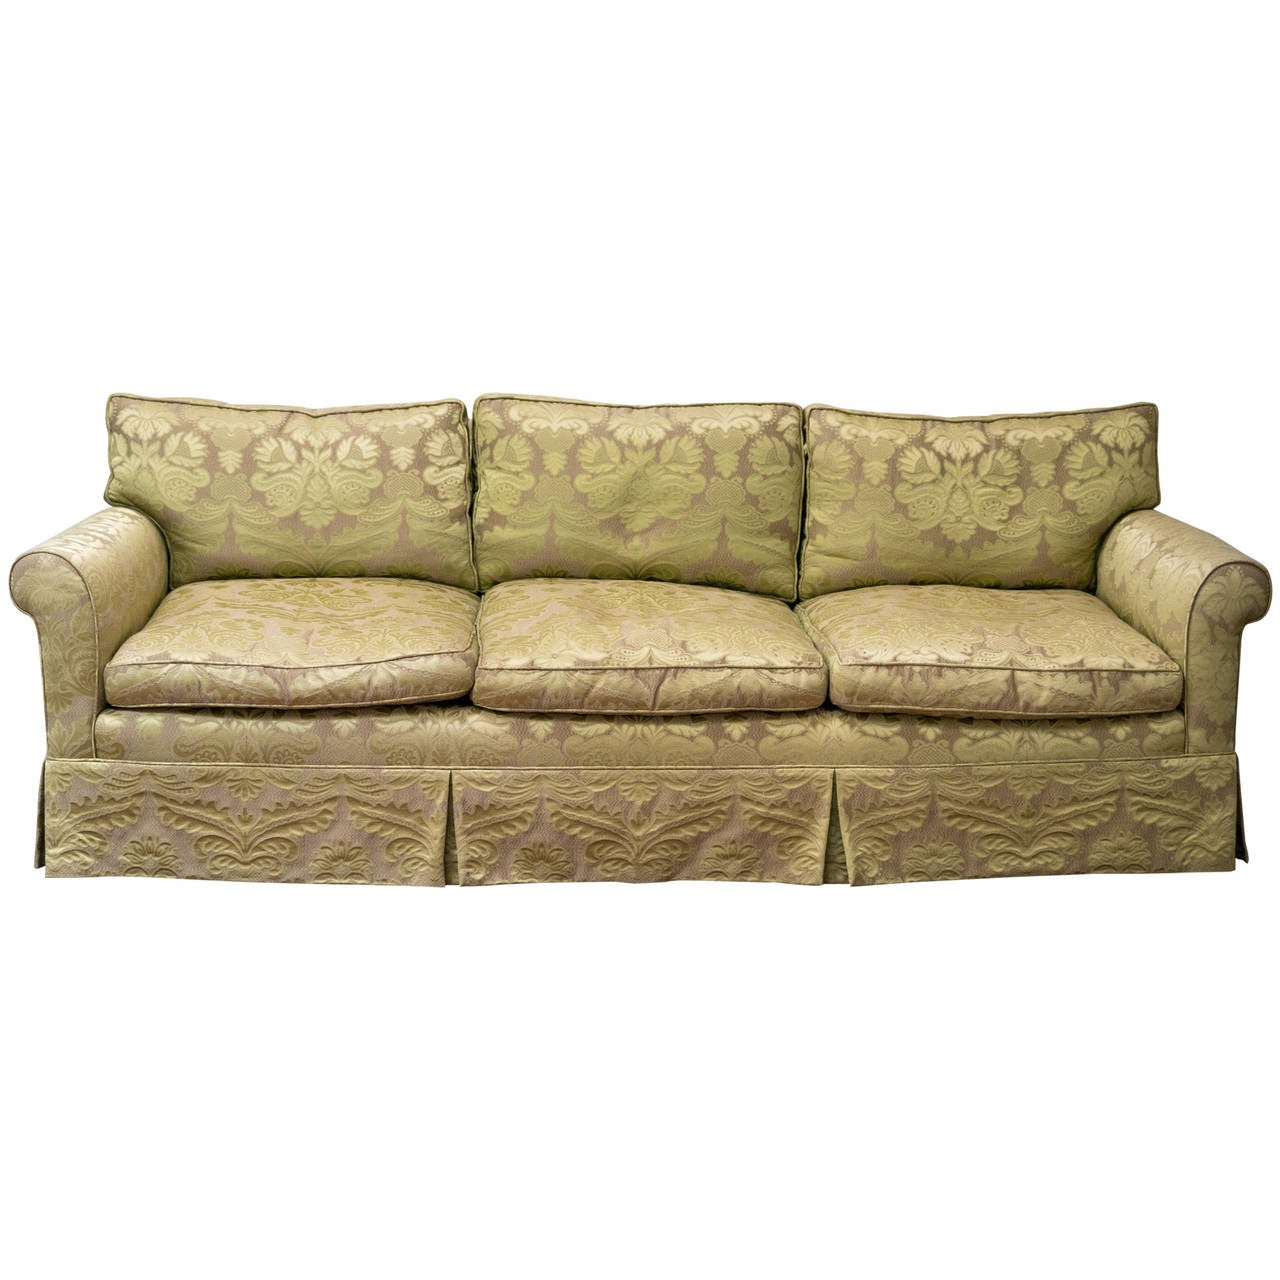 Down Sofa For Sale At 1stdibs